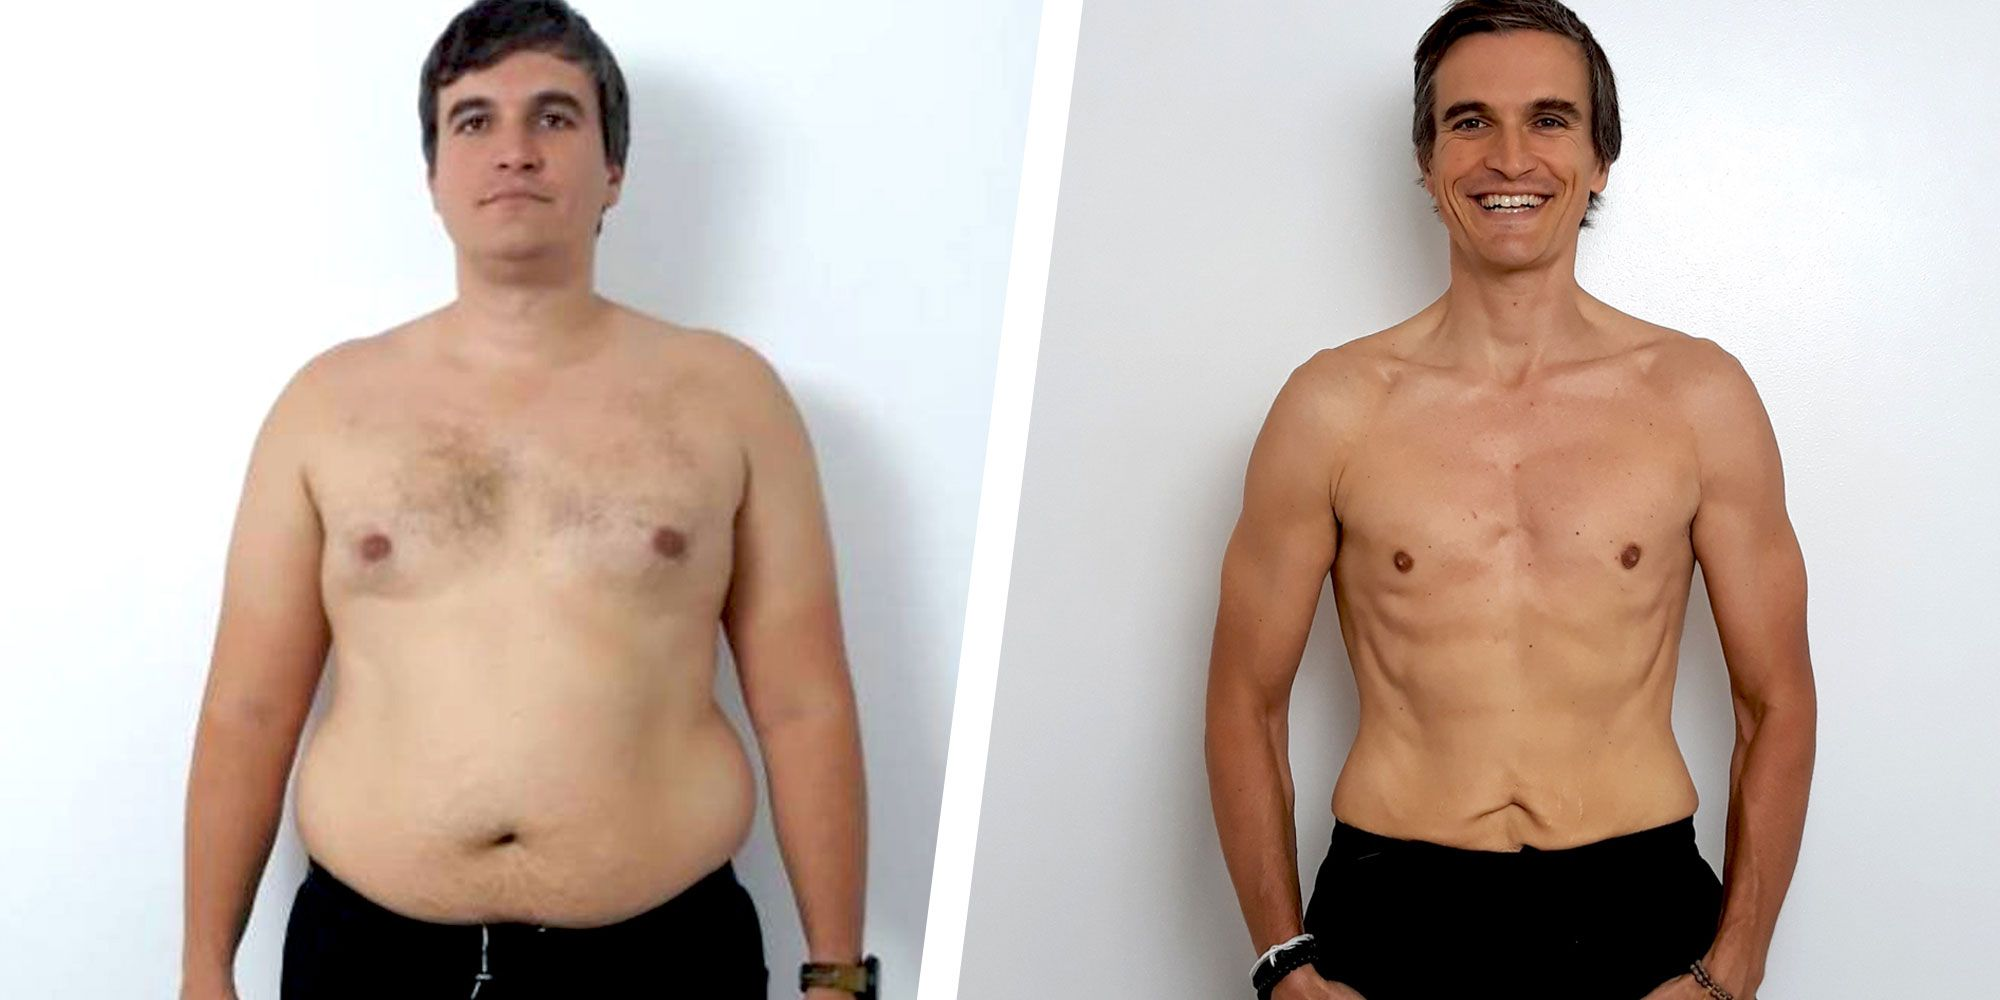 3 Lifestyle Changes Helped This Guy Lose Nearly 100 Pounds in a Year